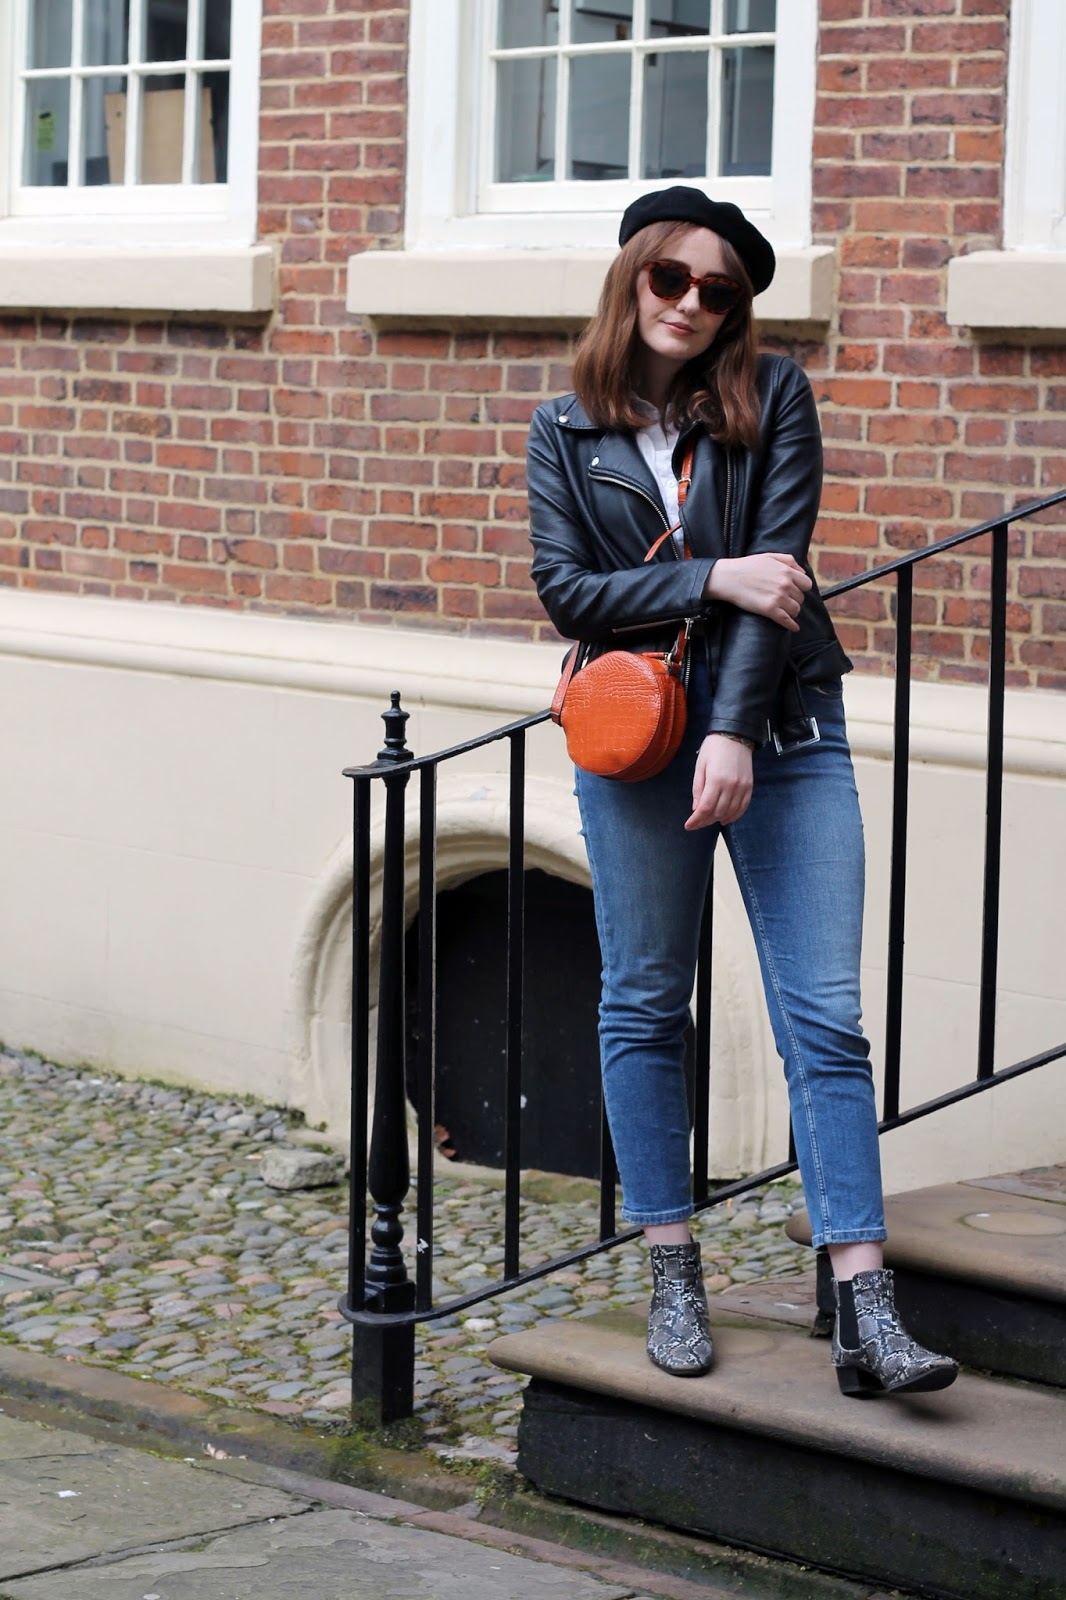 Liverpool fashion blogger outfit with white shirt, blue jeans, snake print boots, black beret, tortoiseshell sunglasses, orange circle bag